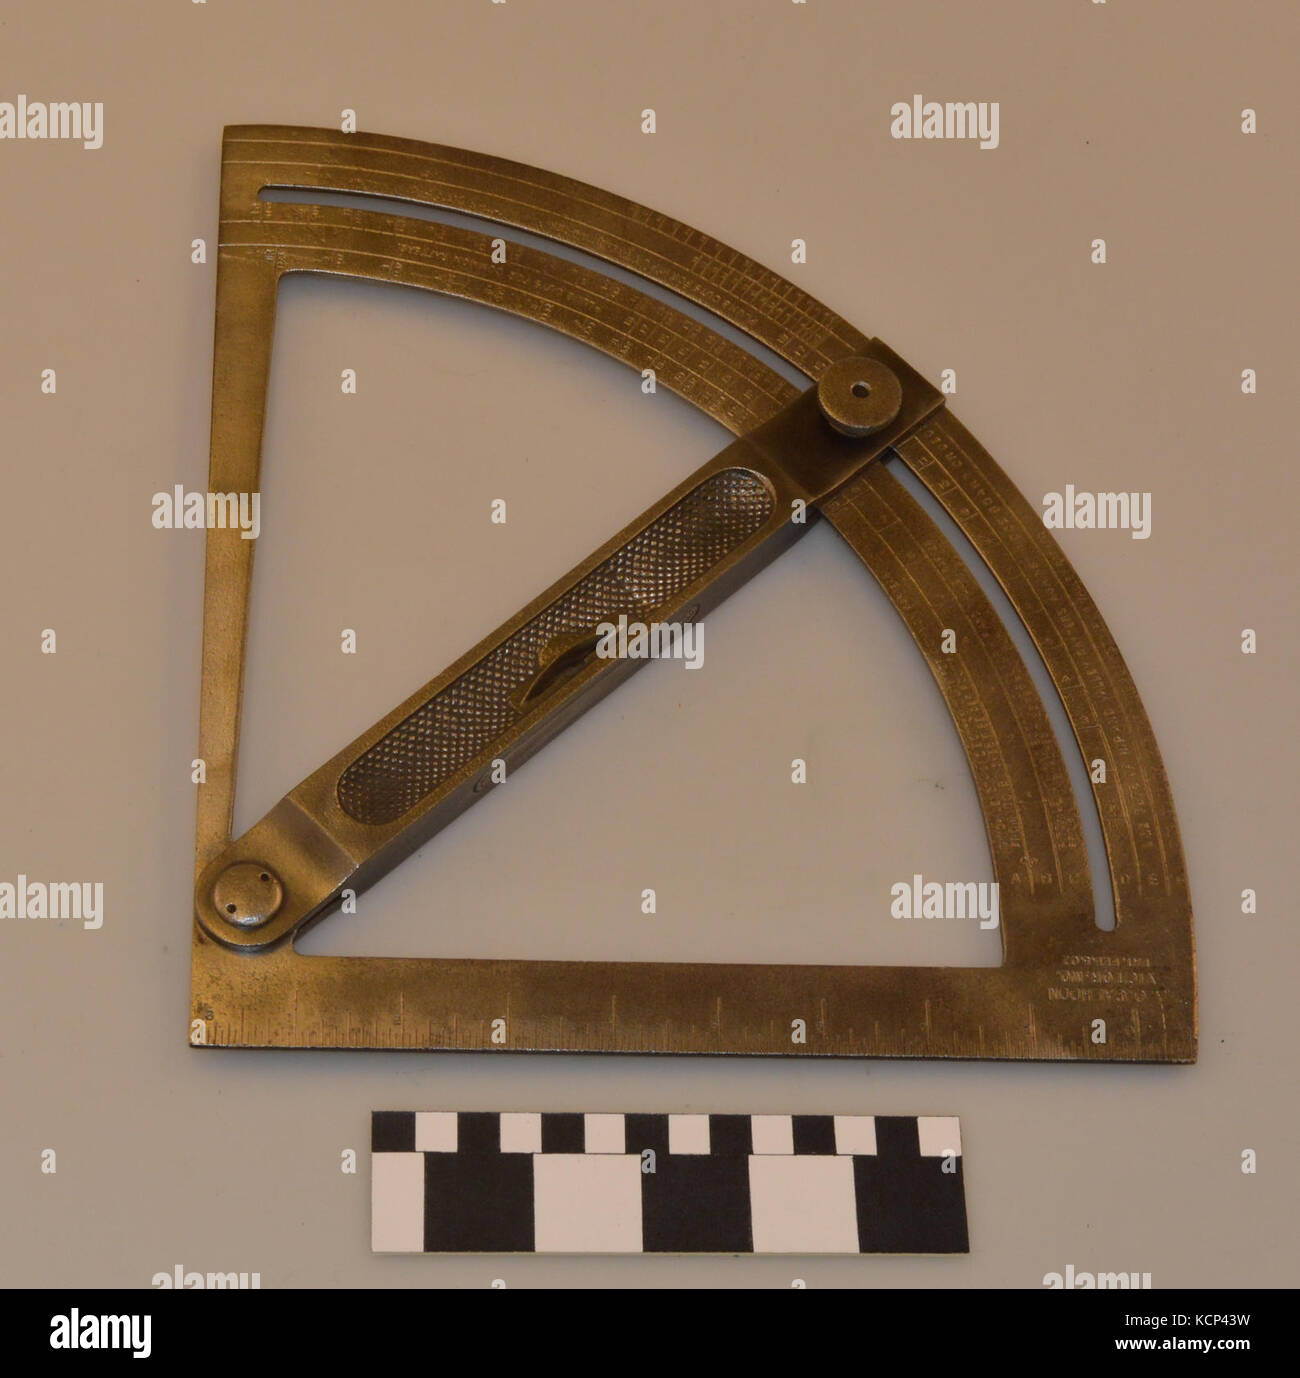 A.O. Calhoon Rafter and Polygon Bevel Gauge - Stock Image